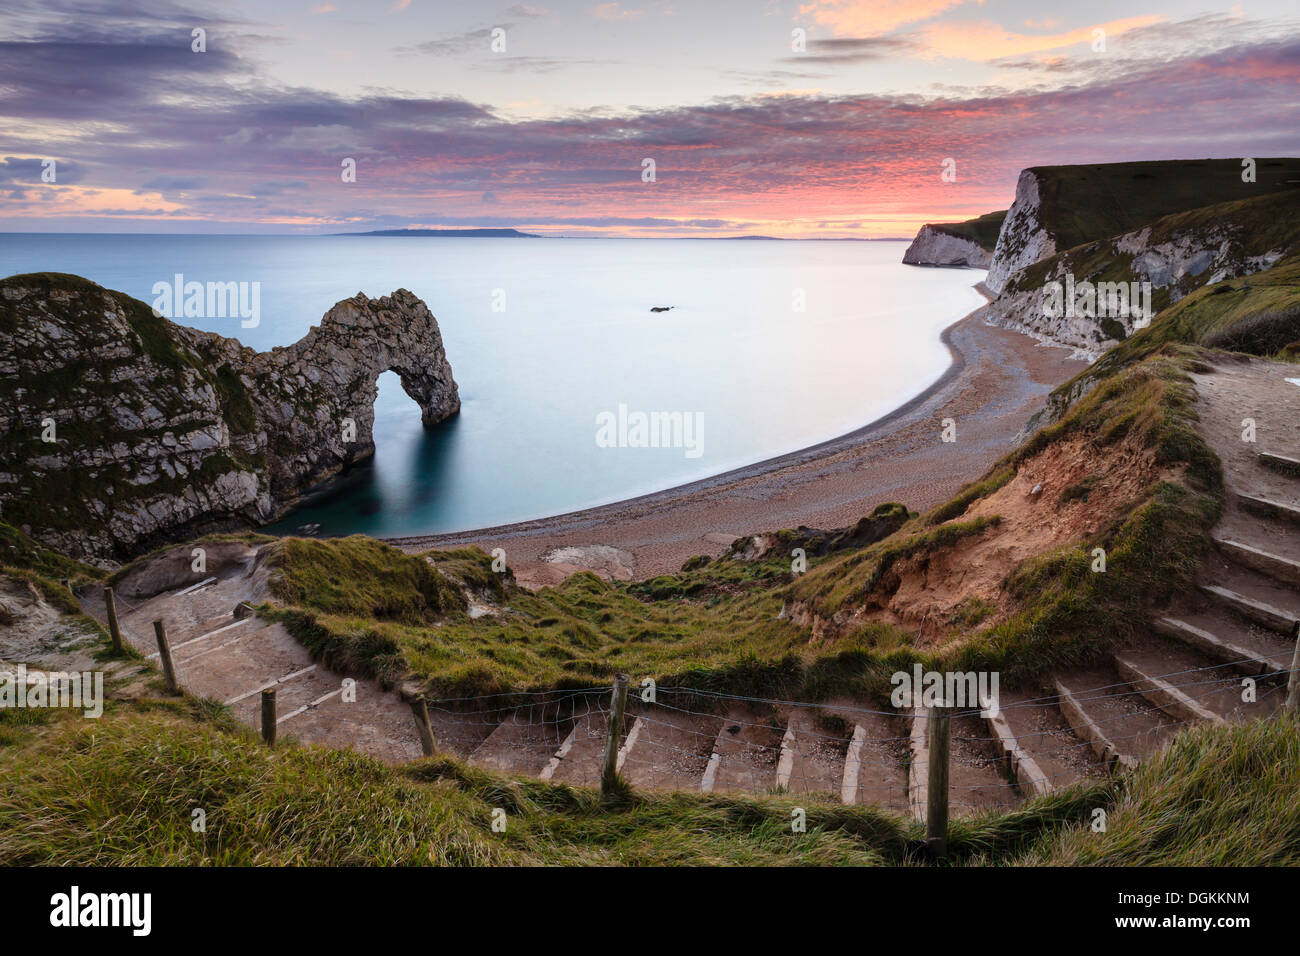 A view of Durdle Door from the cliff top path. - Stock Image